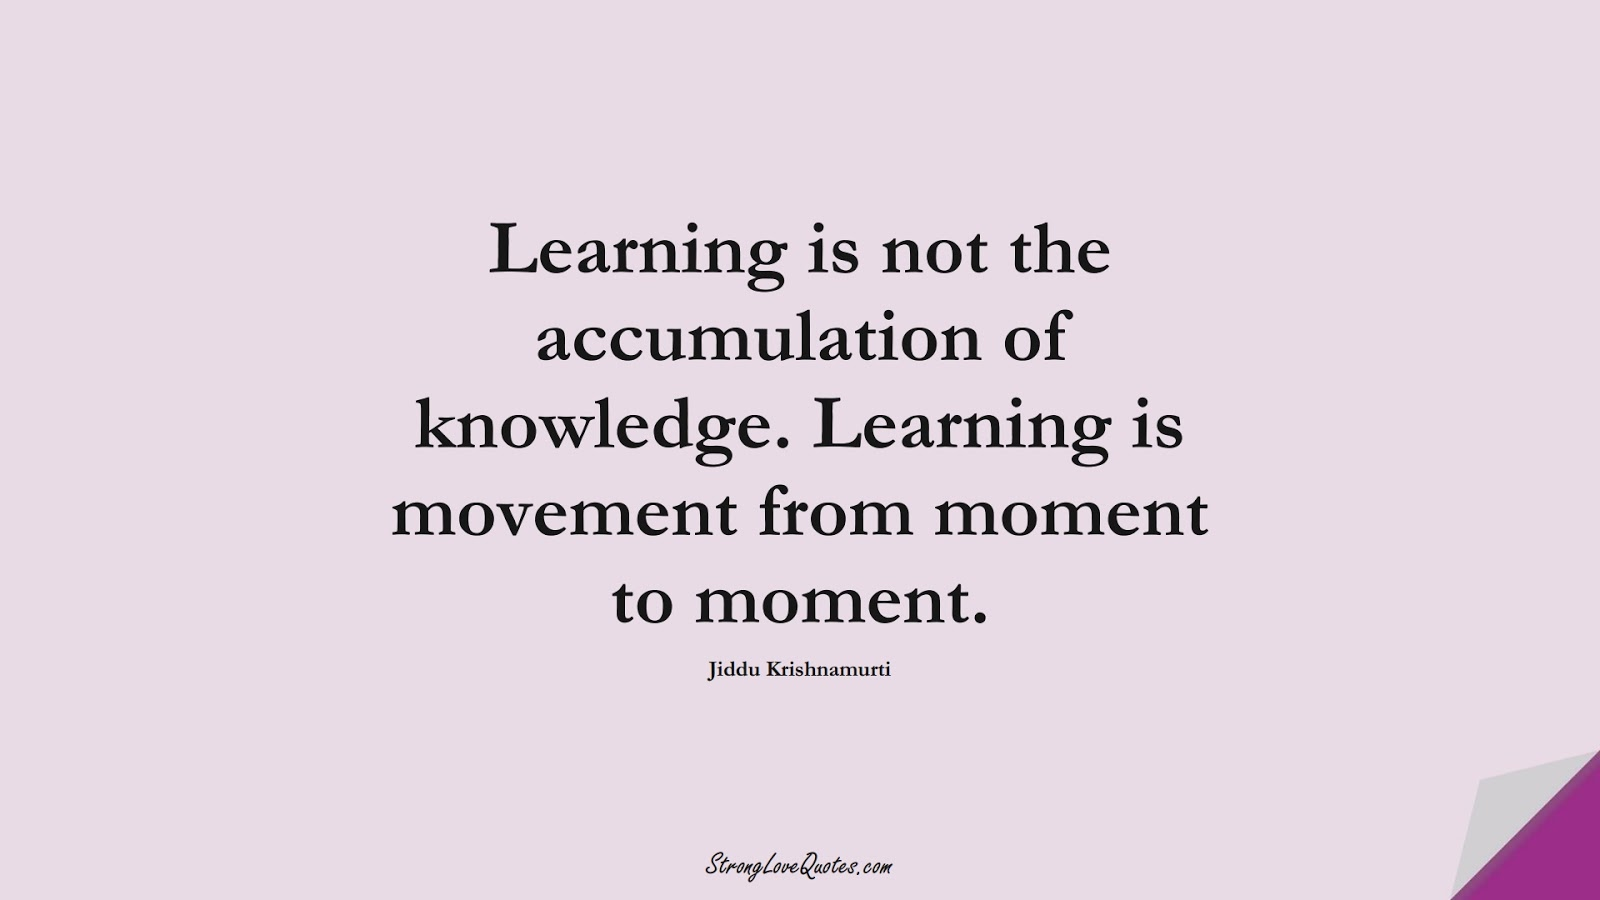 Learning is not the accumulation of knowledge. Learning is movement from moment to moment. (Jiddu Krishnamurti);  #KnowledgeQuotes